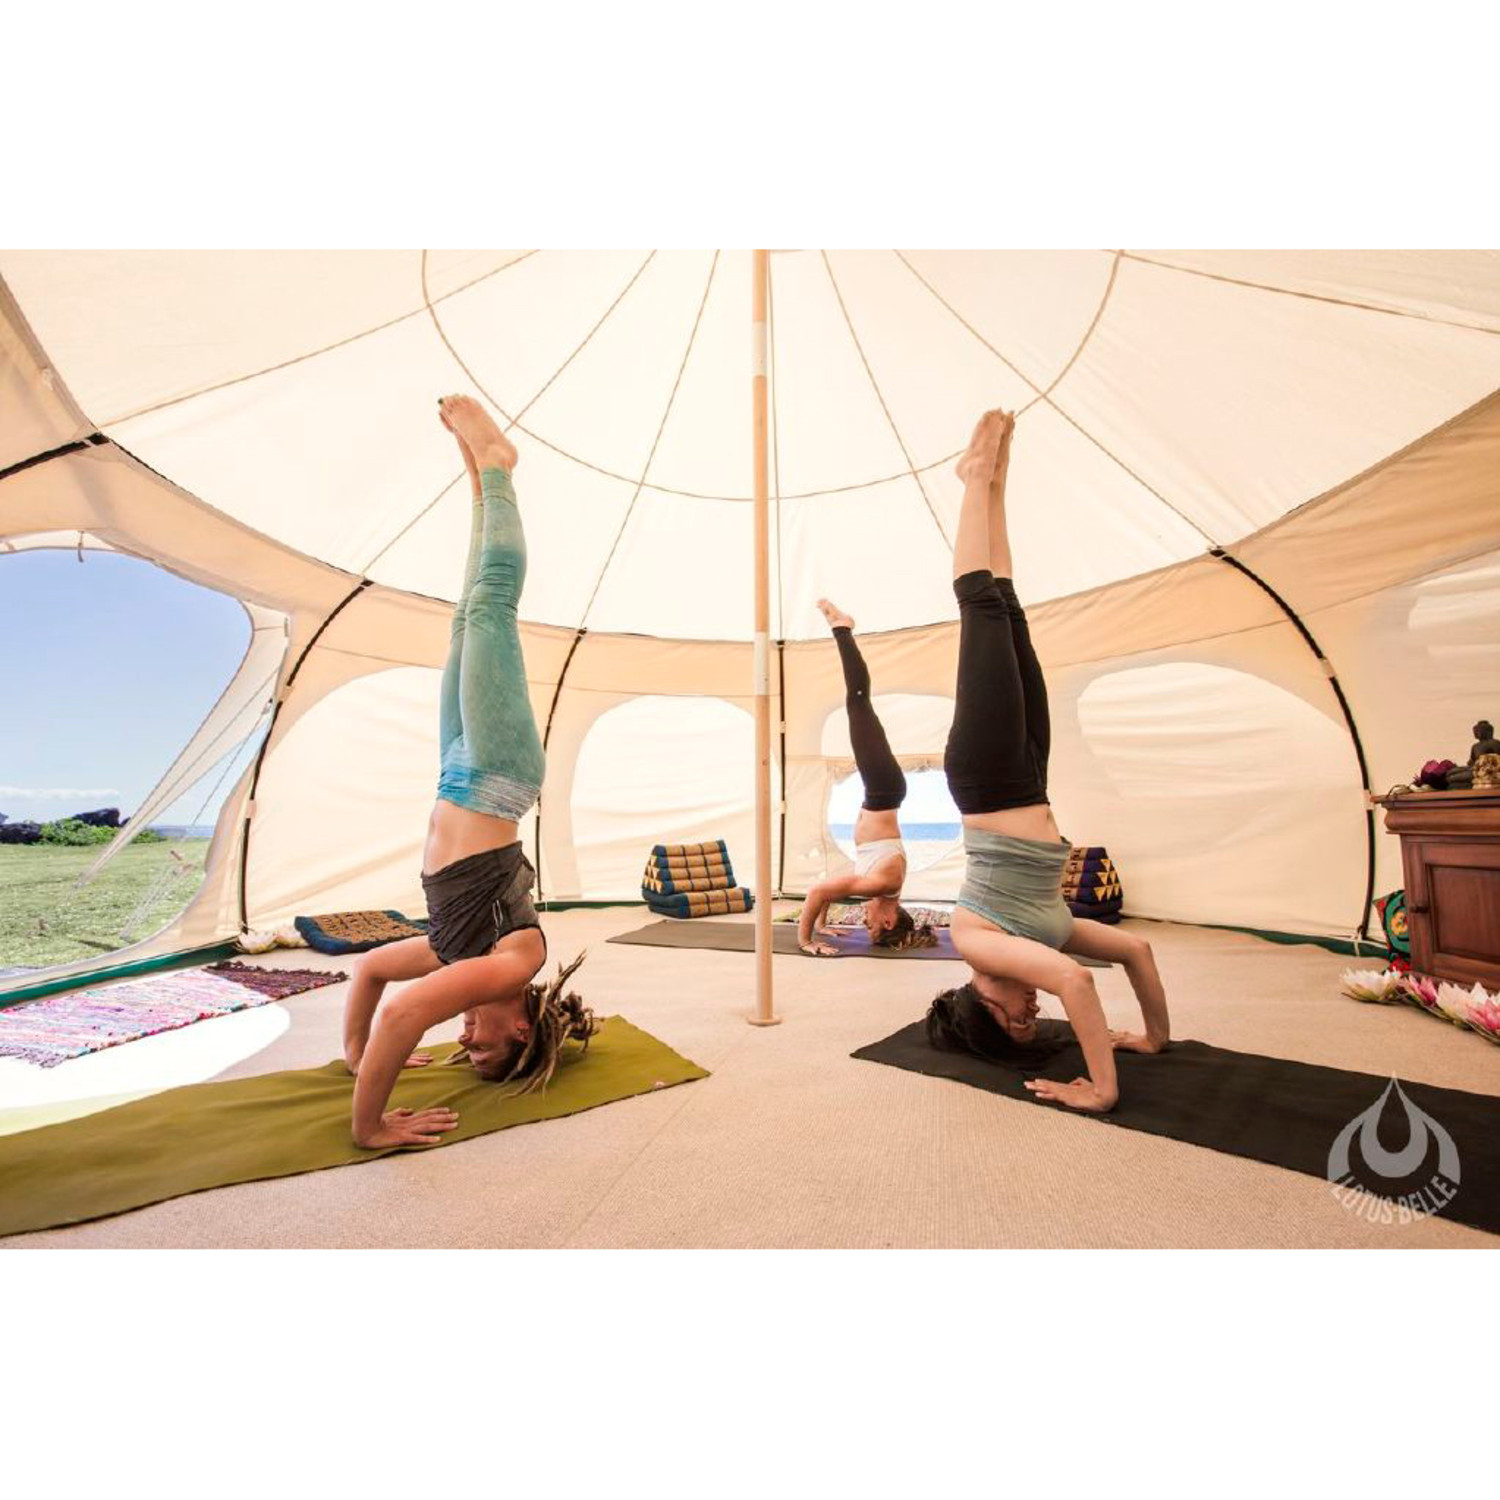 Lotus Belle Outback Deluxe Tent + Burner Hole // 16Ft  sc 1 st  Touch of Modern & Lotus Belle Outback Deluxe Tent + Burner Hole // 16Ft - Lotus ...